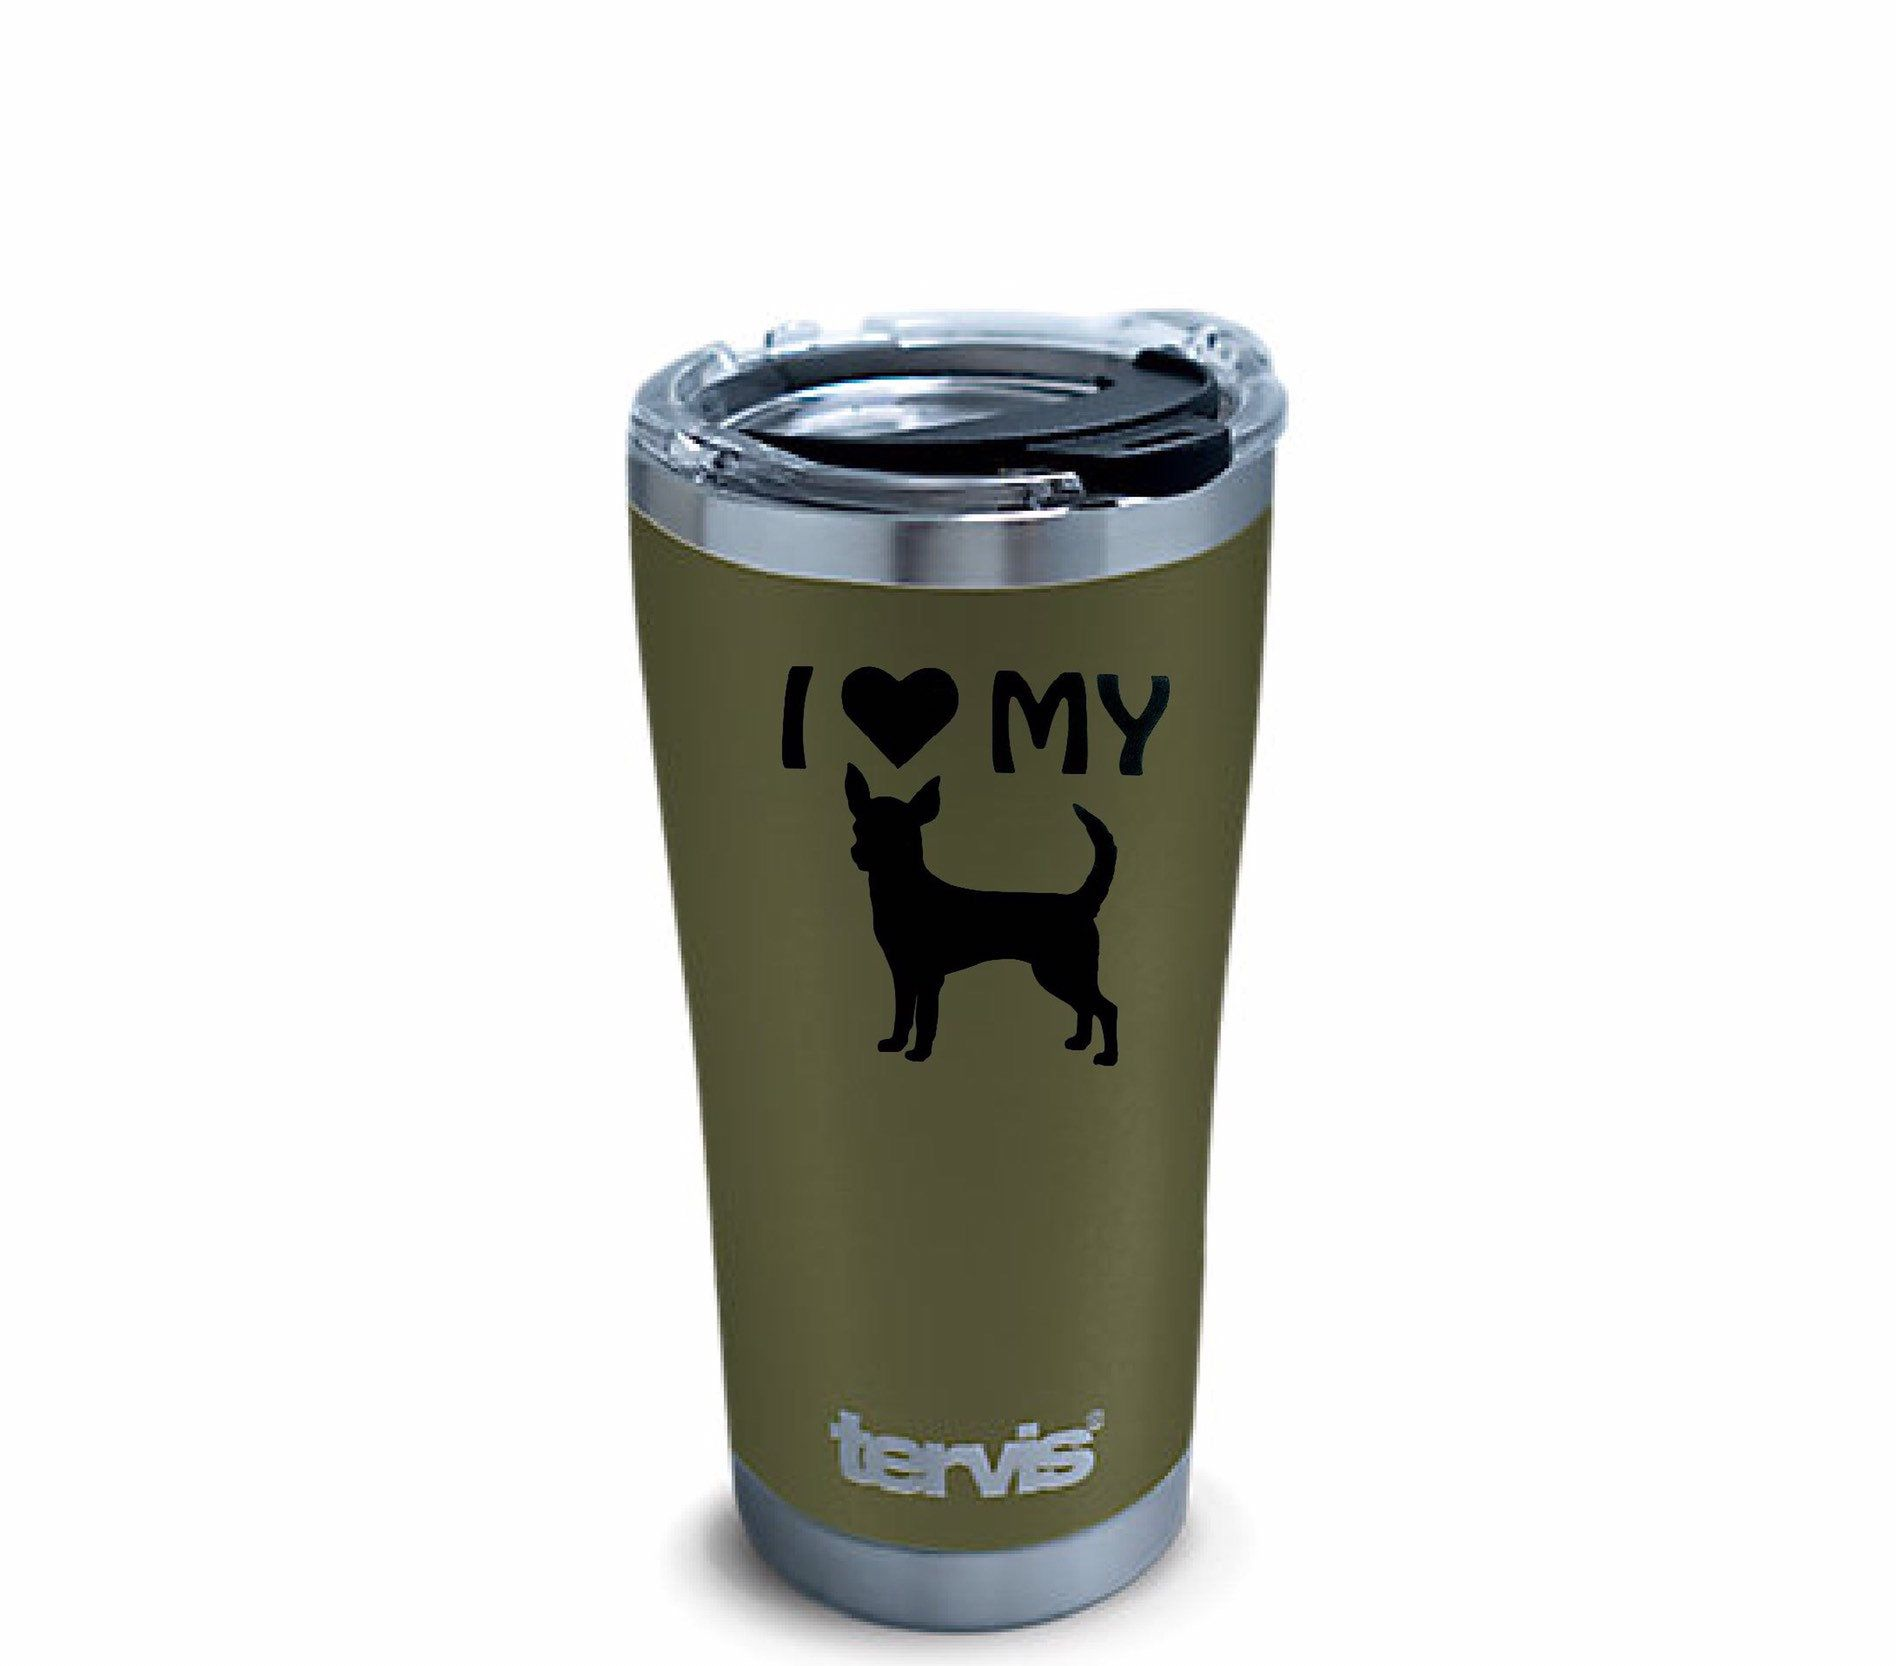 Chihuahua Stainless Tumbler for Chihuahua Lovers, Custom Double Wall Insulated Cup, Olive Powder Coat Steel Tumbler for Dog Lovers